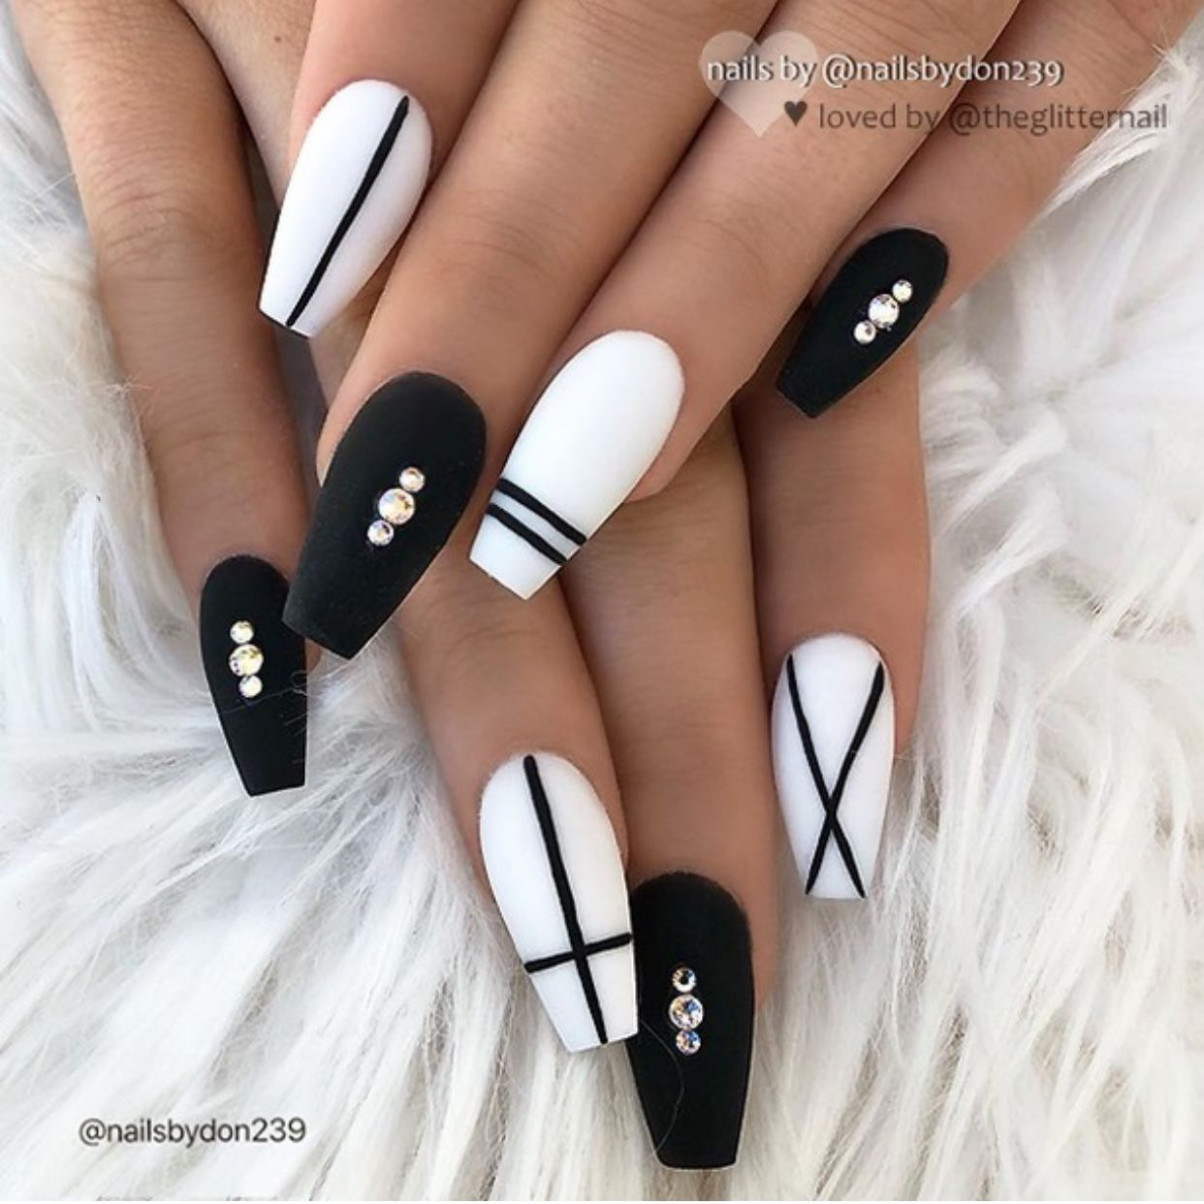 nails #women #style #beauty  Matted nails, Chic nails, Coffin  - Black And White Coffin Nail Designs